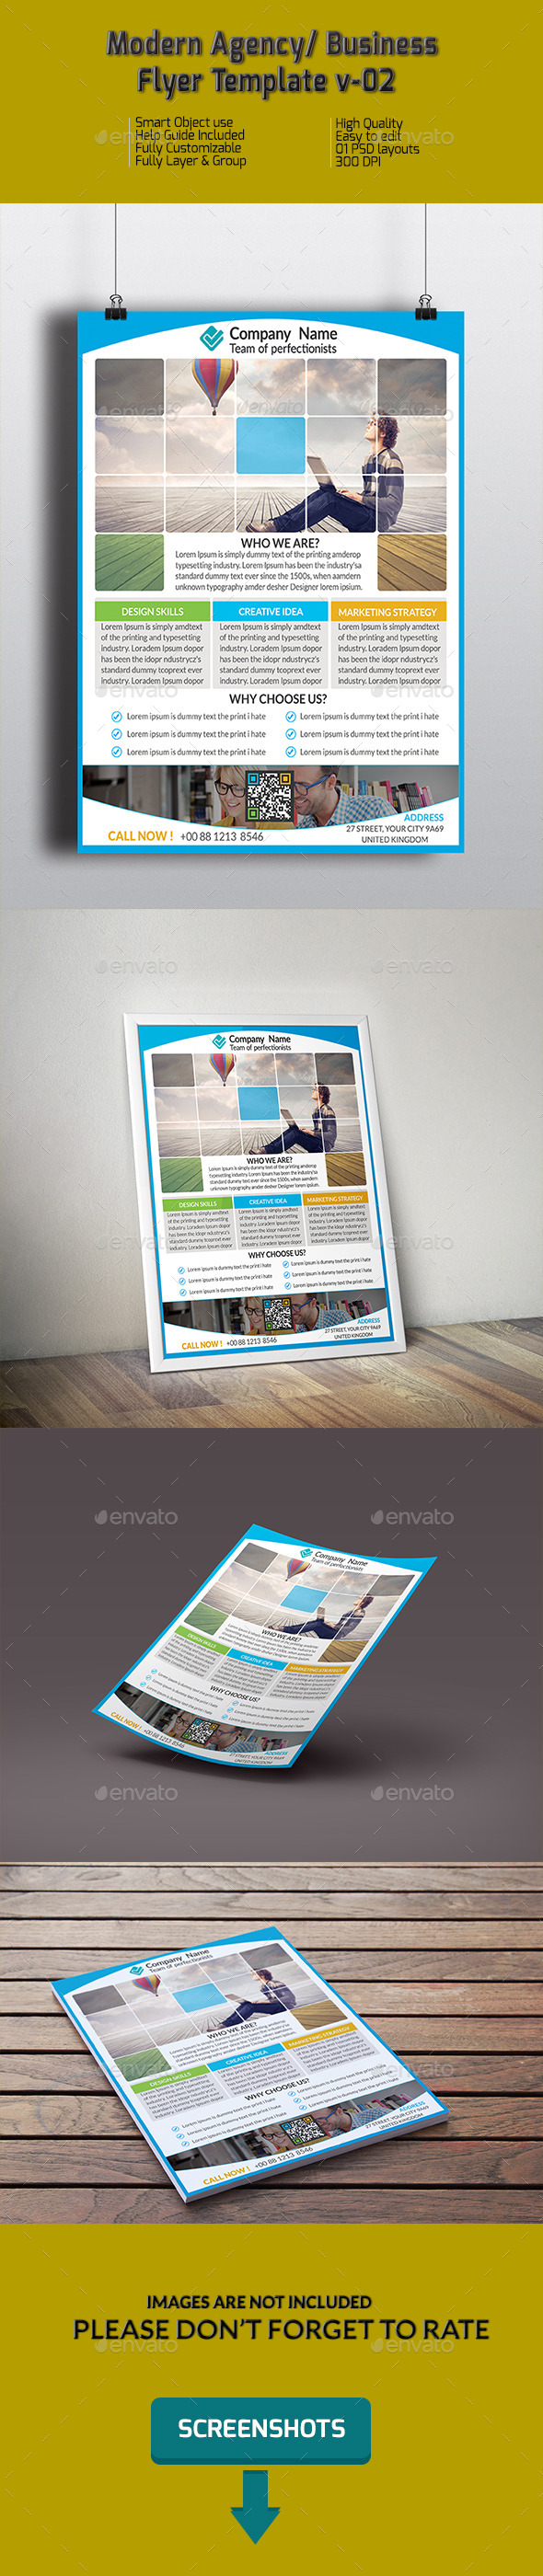 Modern Agency/ Business Flyer Template v-02 - Corporate Flyers